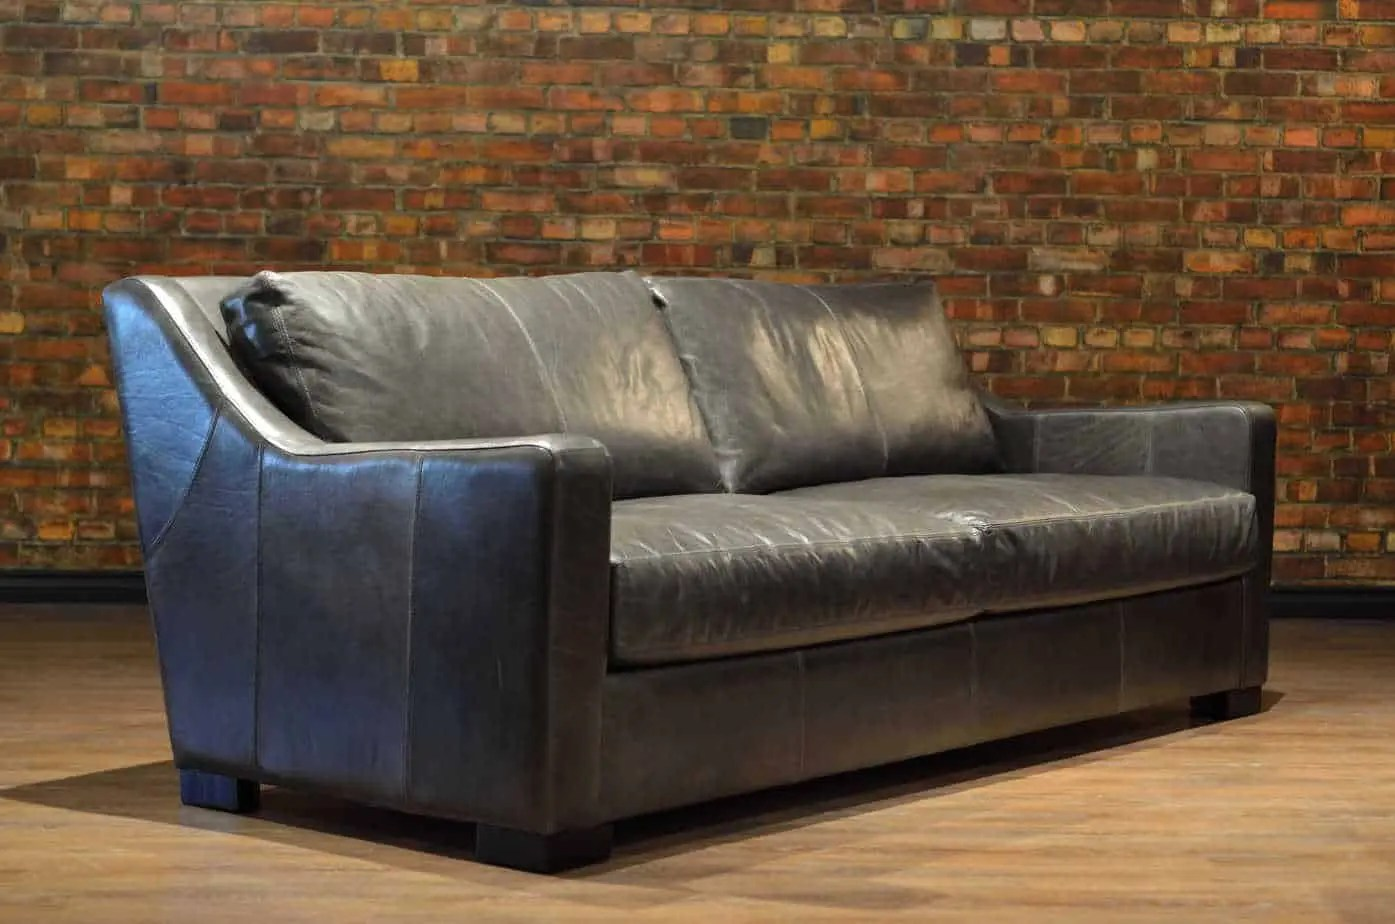 Leather Couch Canada The Loft Leather Sofa Canada 39s Boss Leather Sofas And